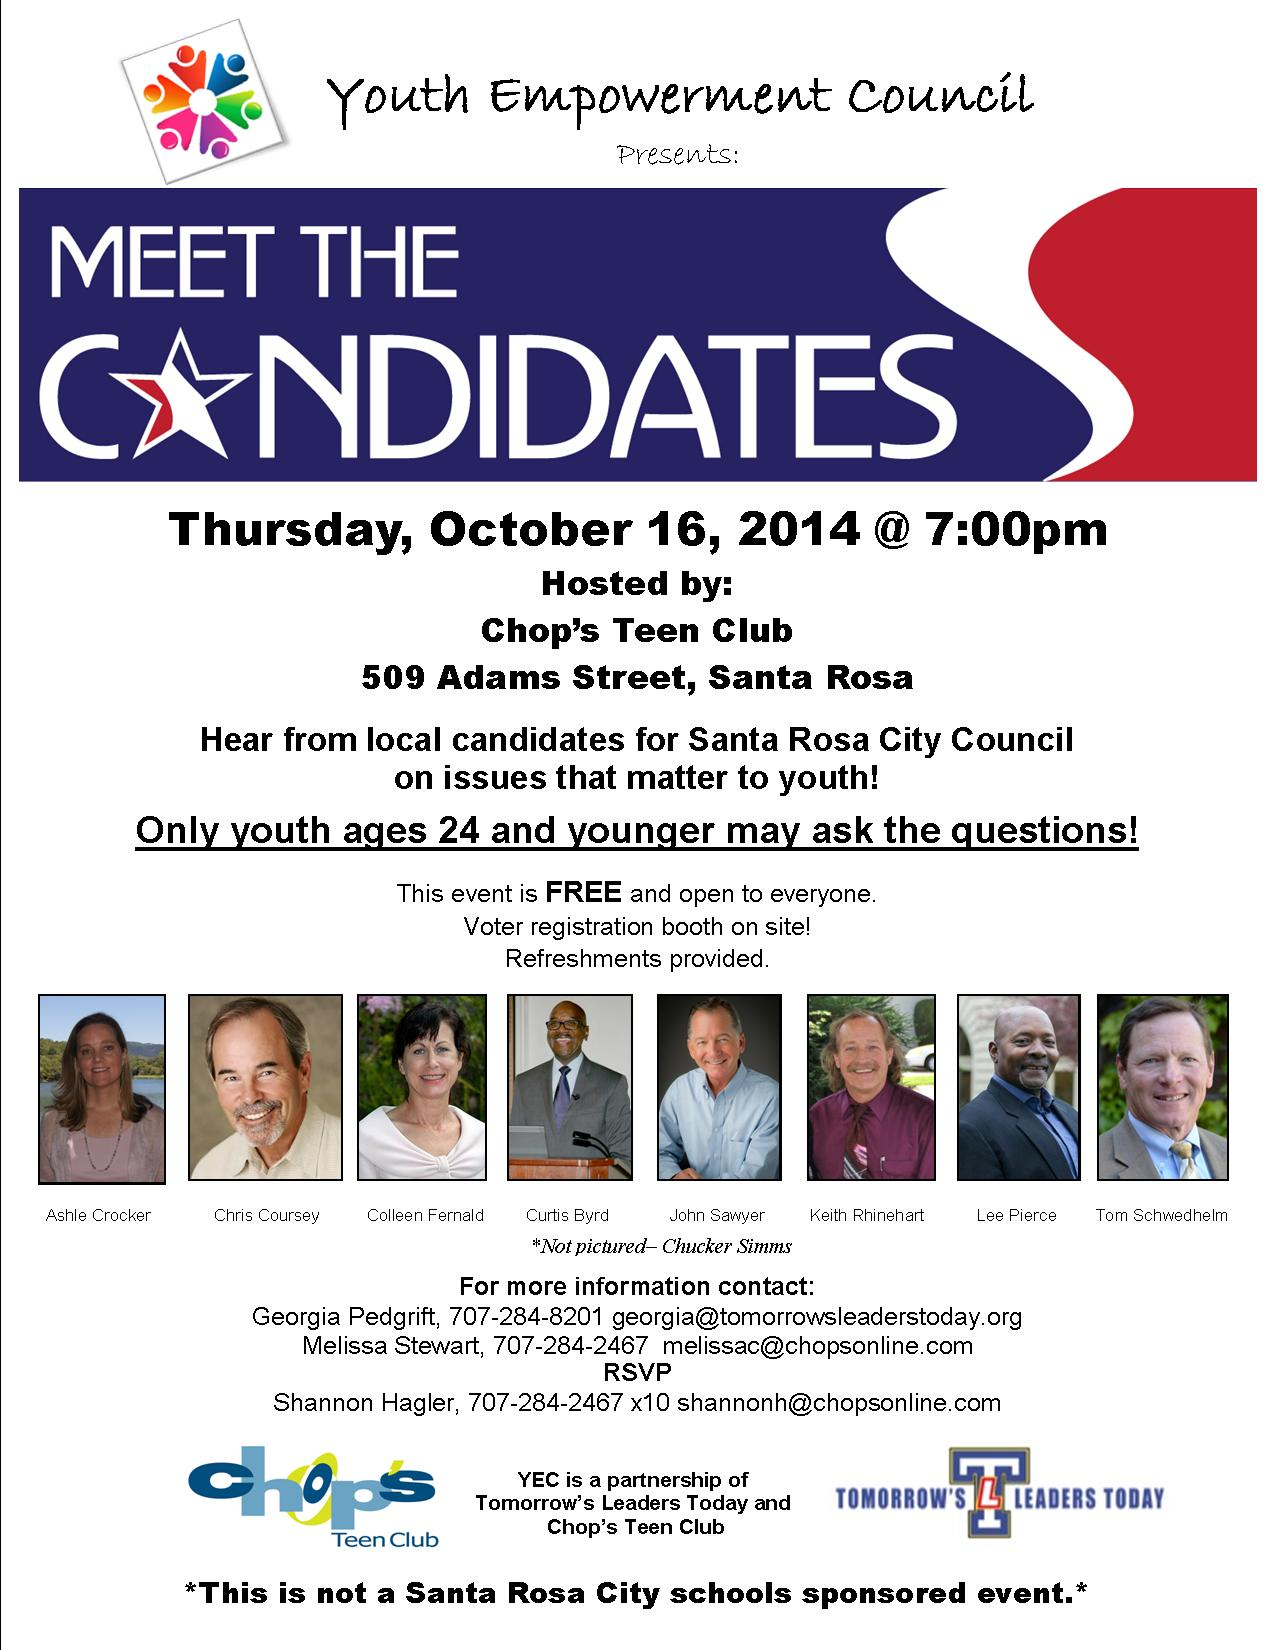 Sample Questions For City Council Candidates